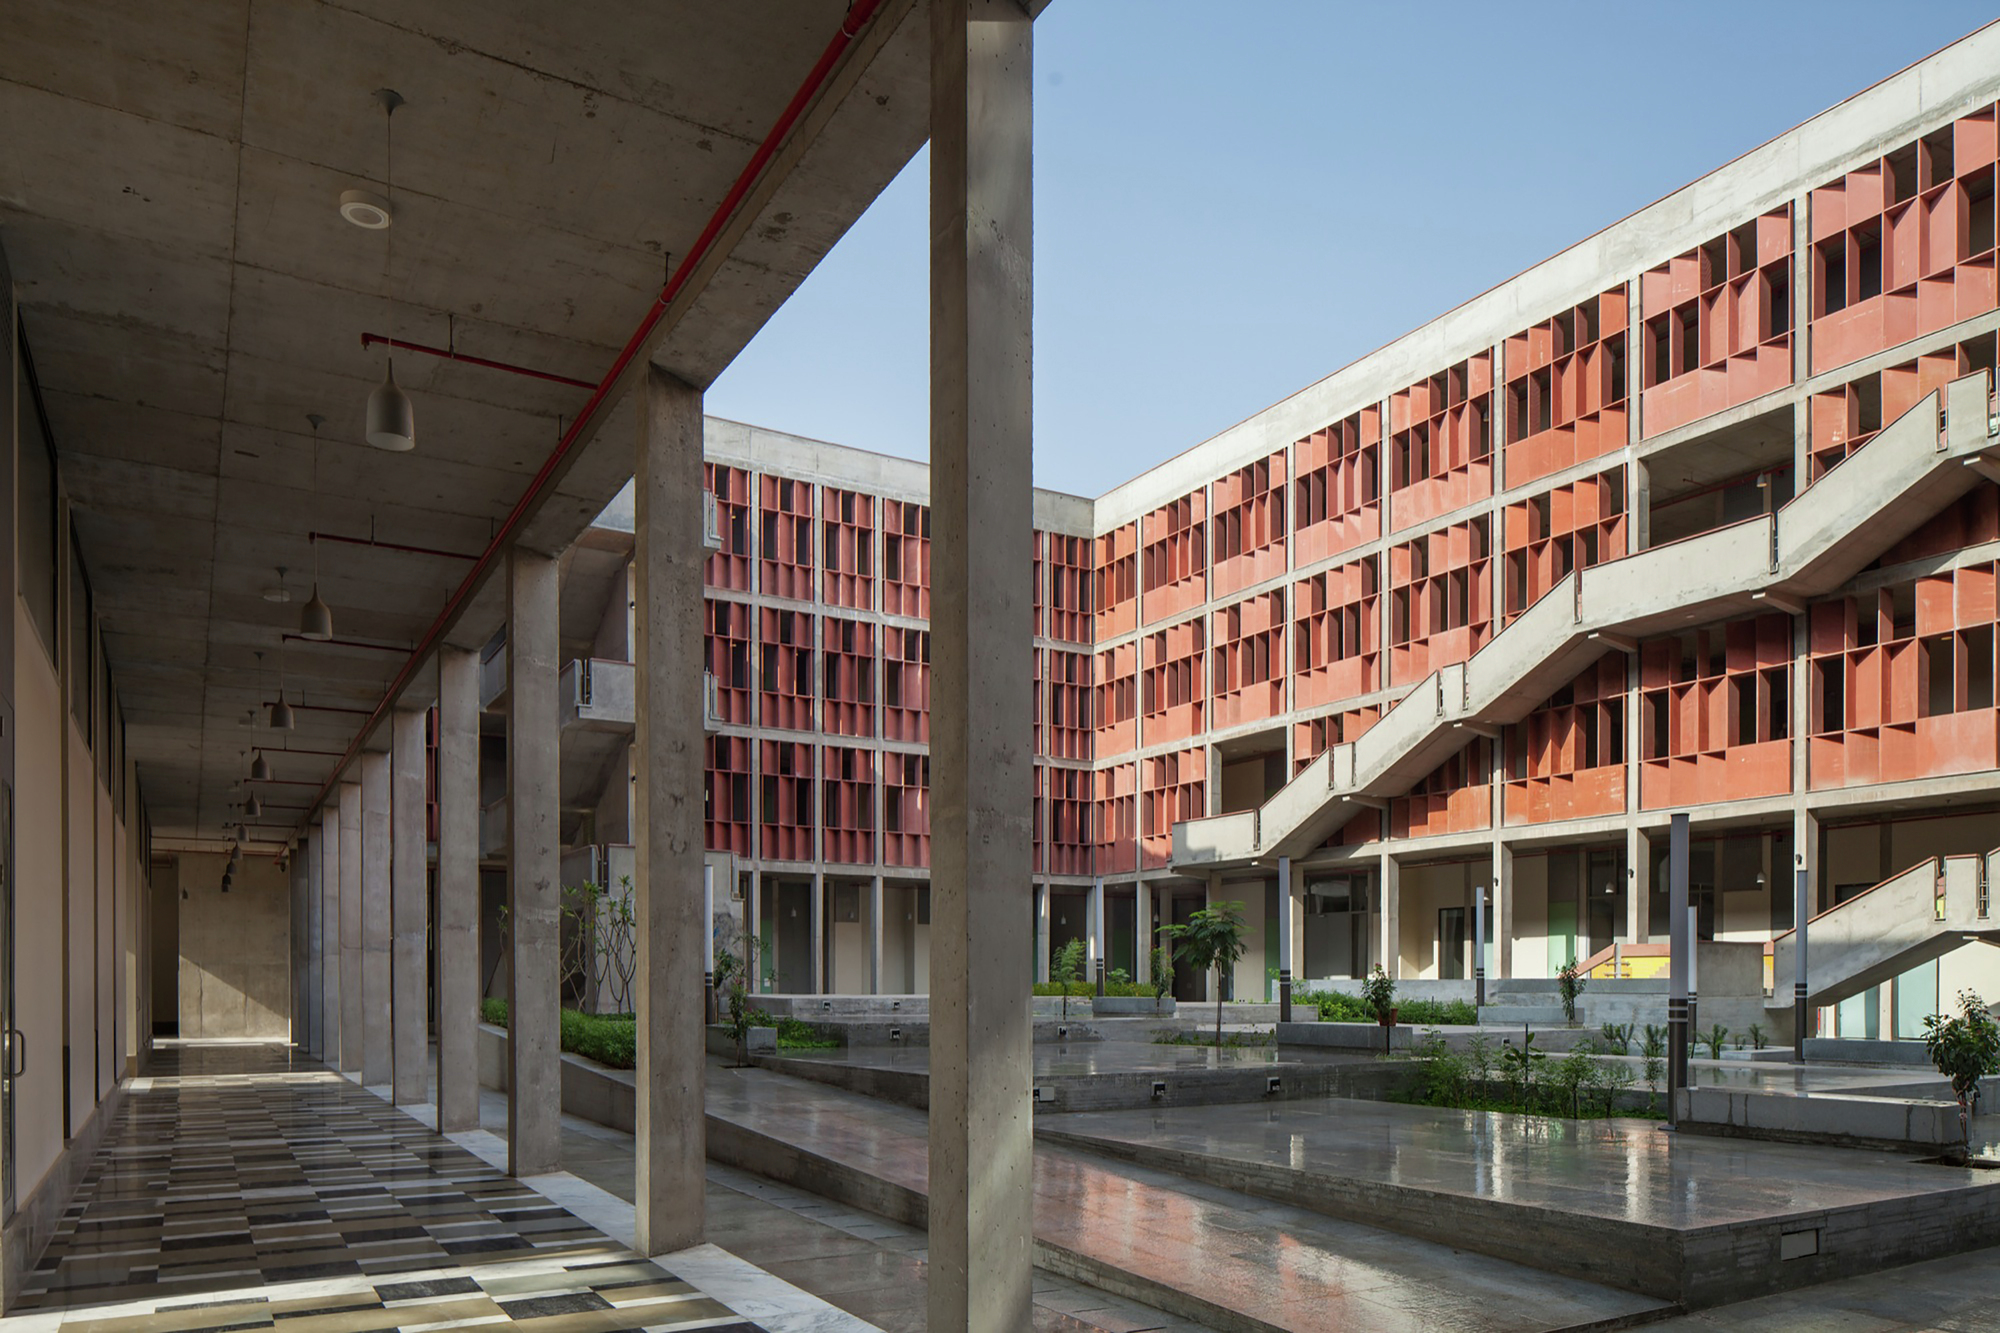 Gallery of Institute of Engineering and Technology ...